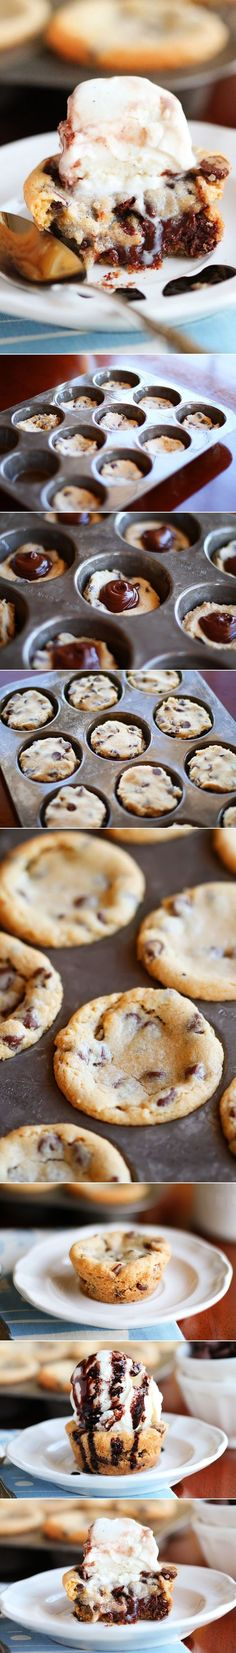 Deep Dish Chocolate Chip Molten Lava Cookies made in a muffin tin!